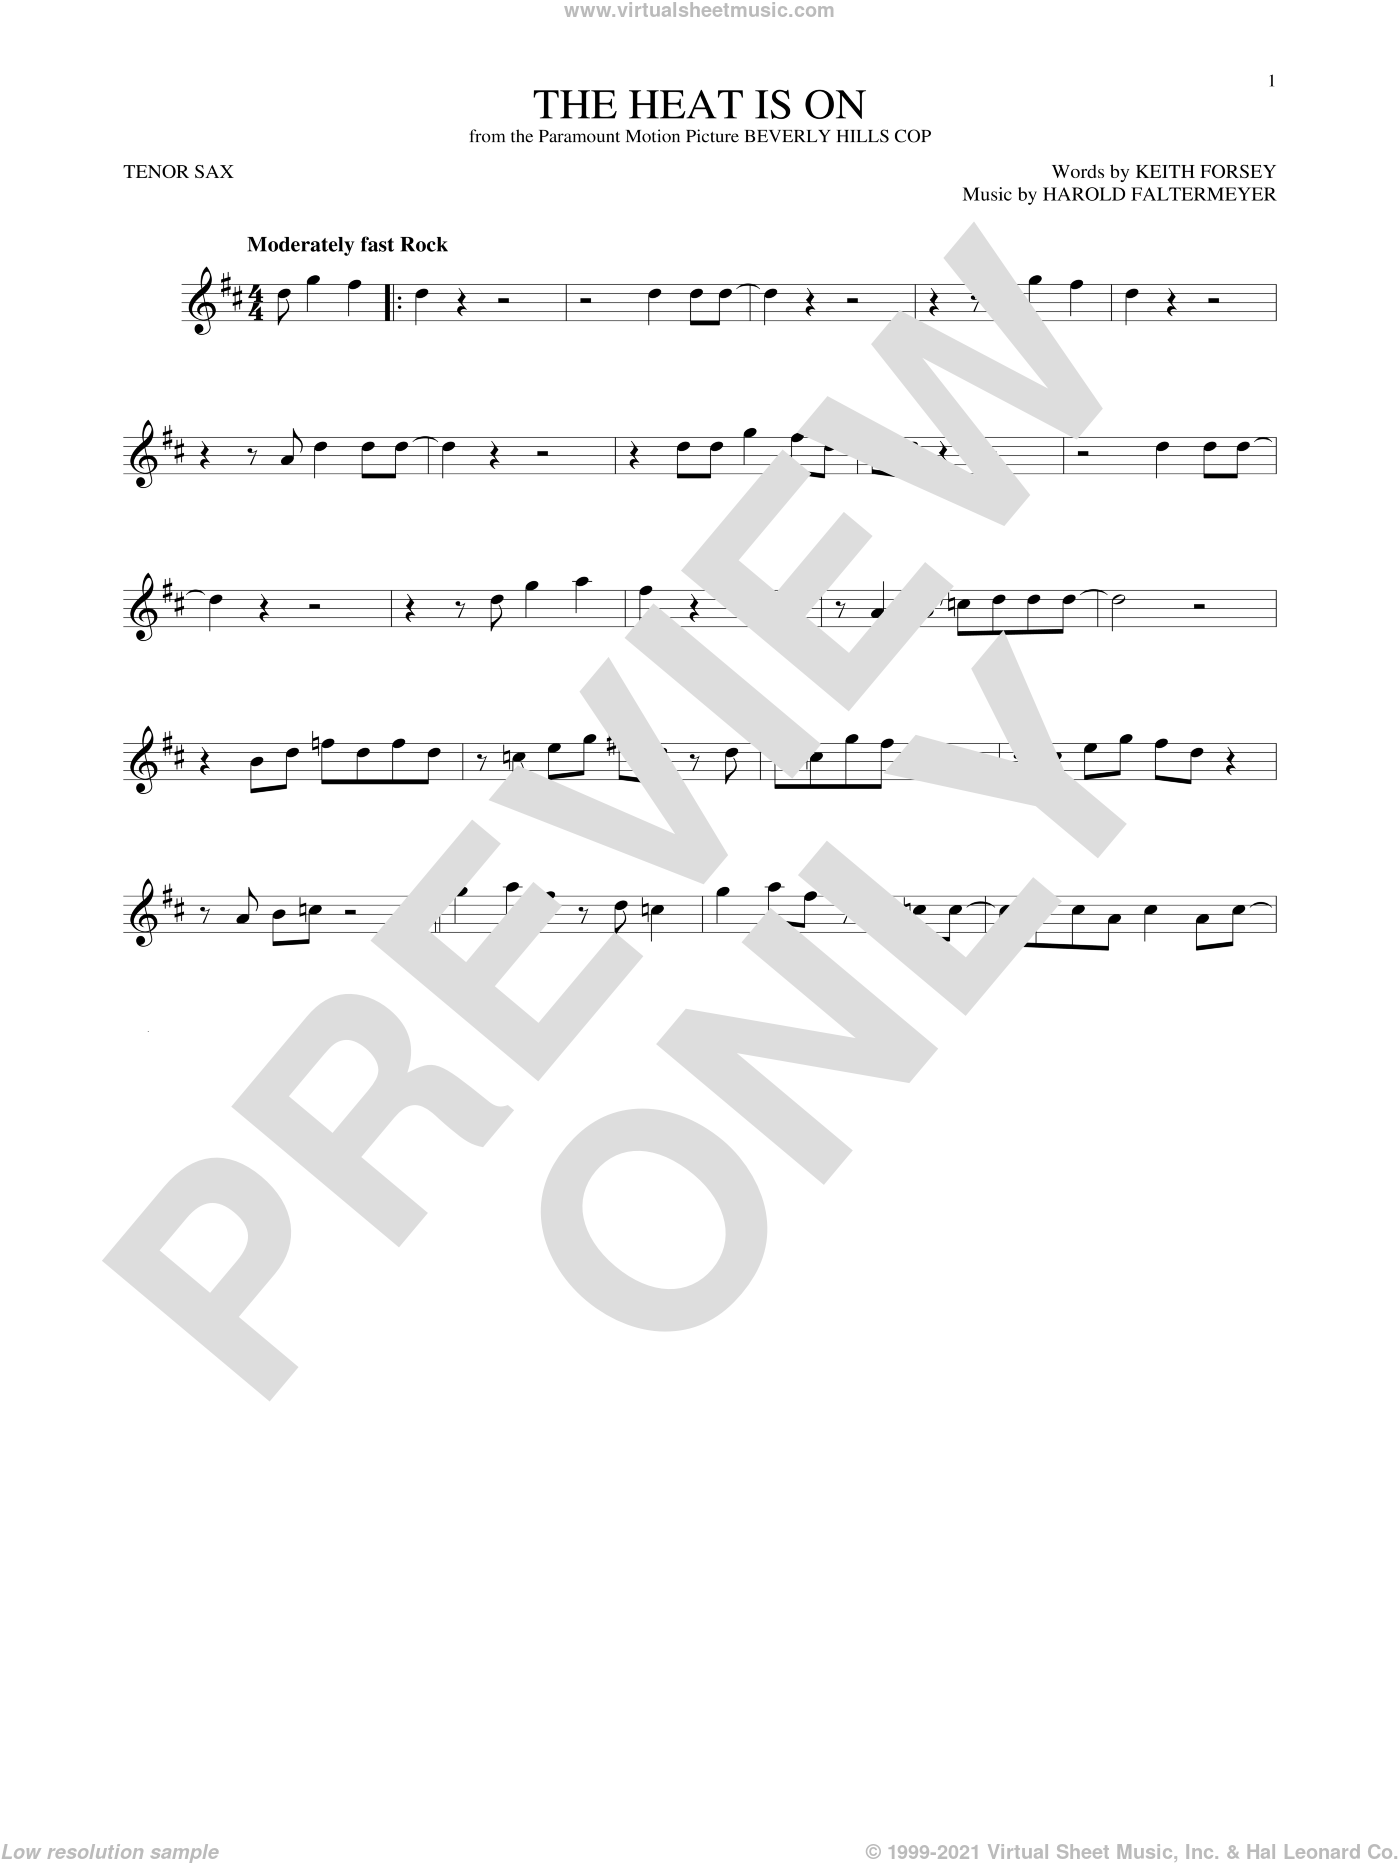 The Heat Is On sheet music for tenor saxophone solo by Glenn Frey, Harold Faltermeyer and Keith Forsey, intermediate skill level